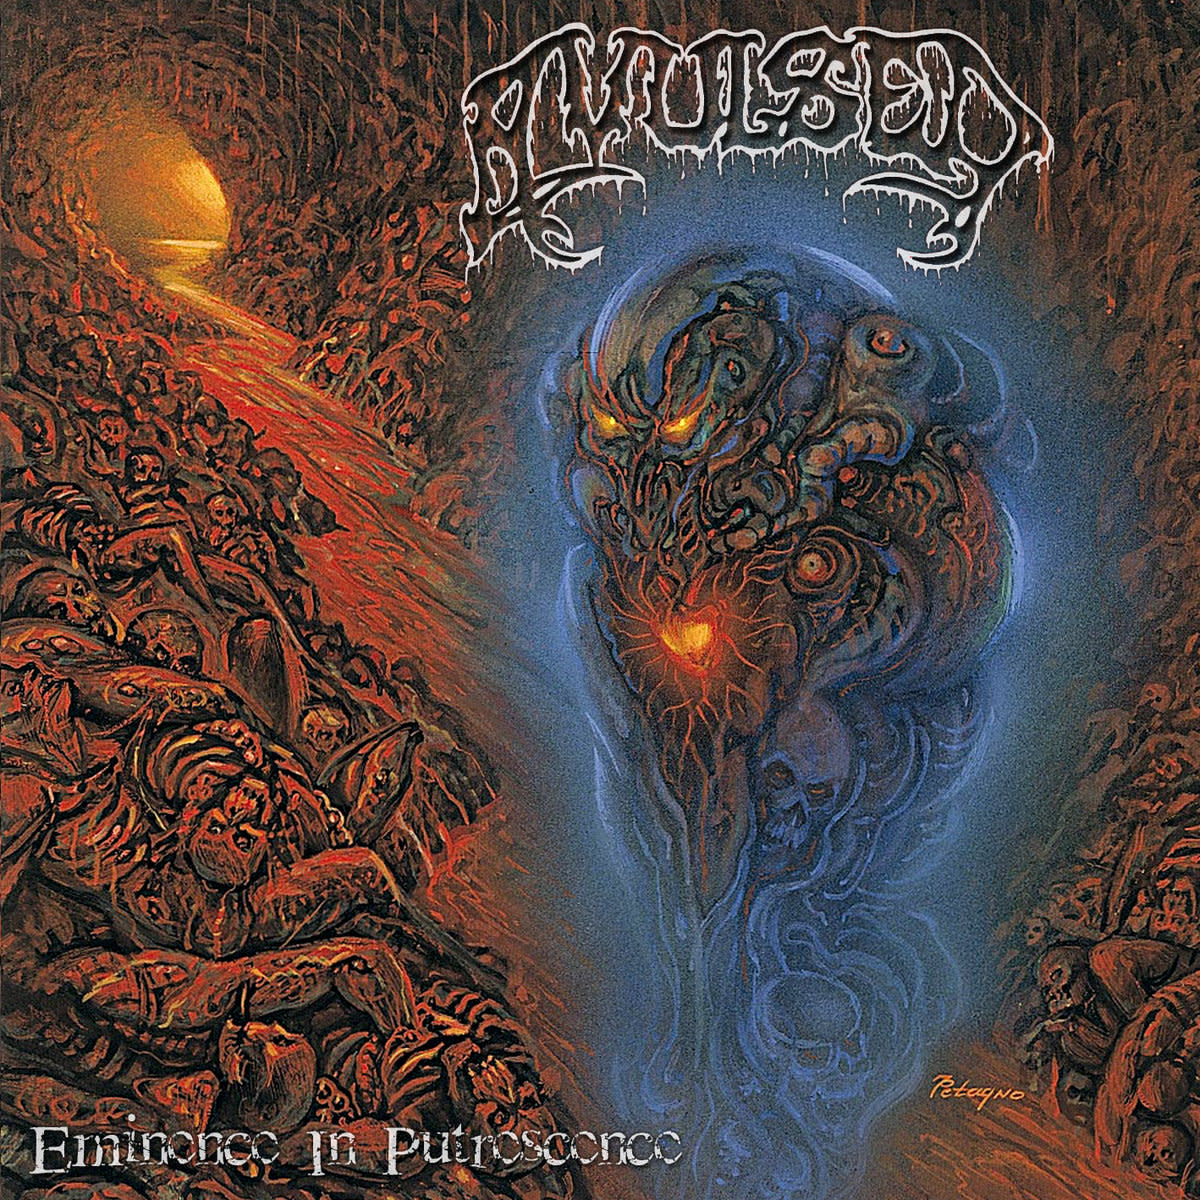 A Review of the Album Eminence in Putrescence by Spanish Death Metal Band Avulsed